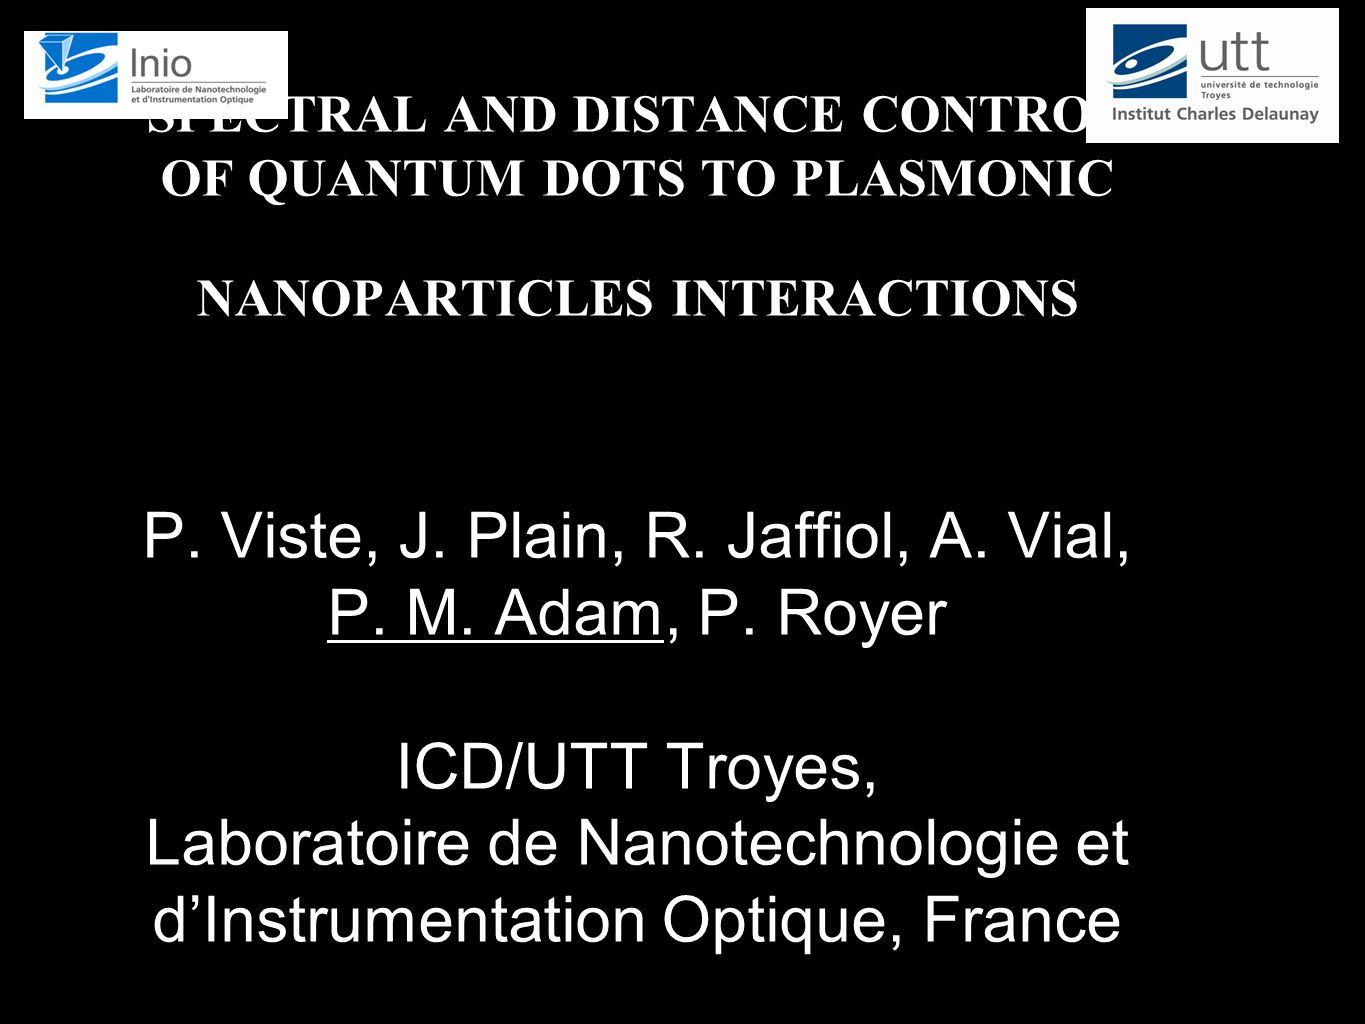 SPECTRAL AND DISTANCE CONTROL OF QUANTUM DOTS TO PLASMONIC NANOPARTICLES INTERACTIONS P.